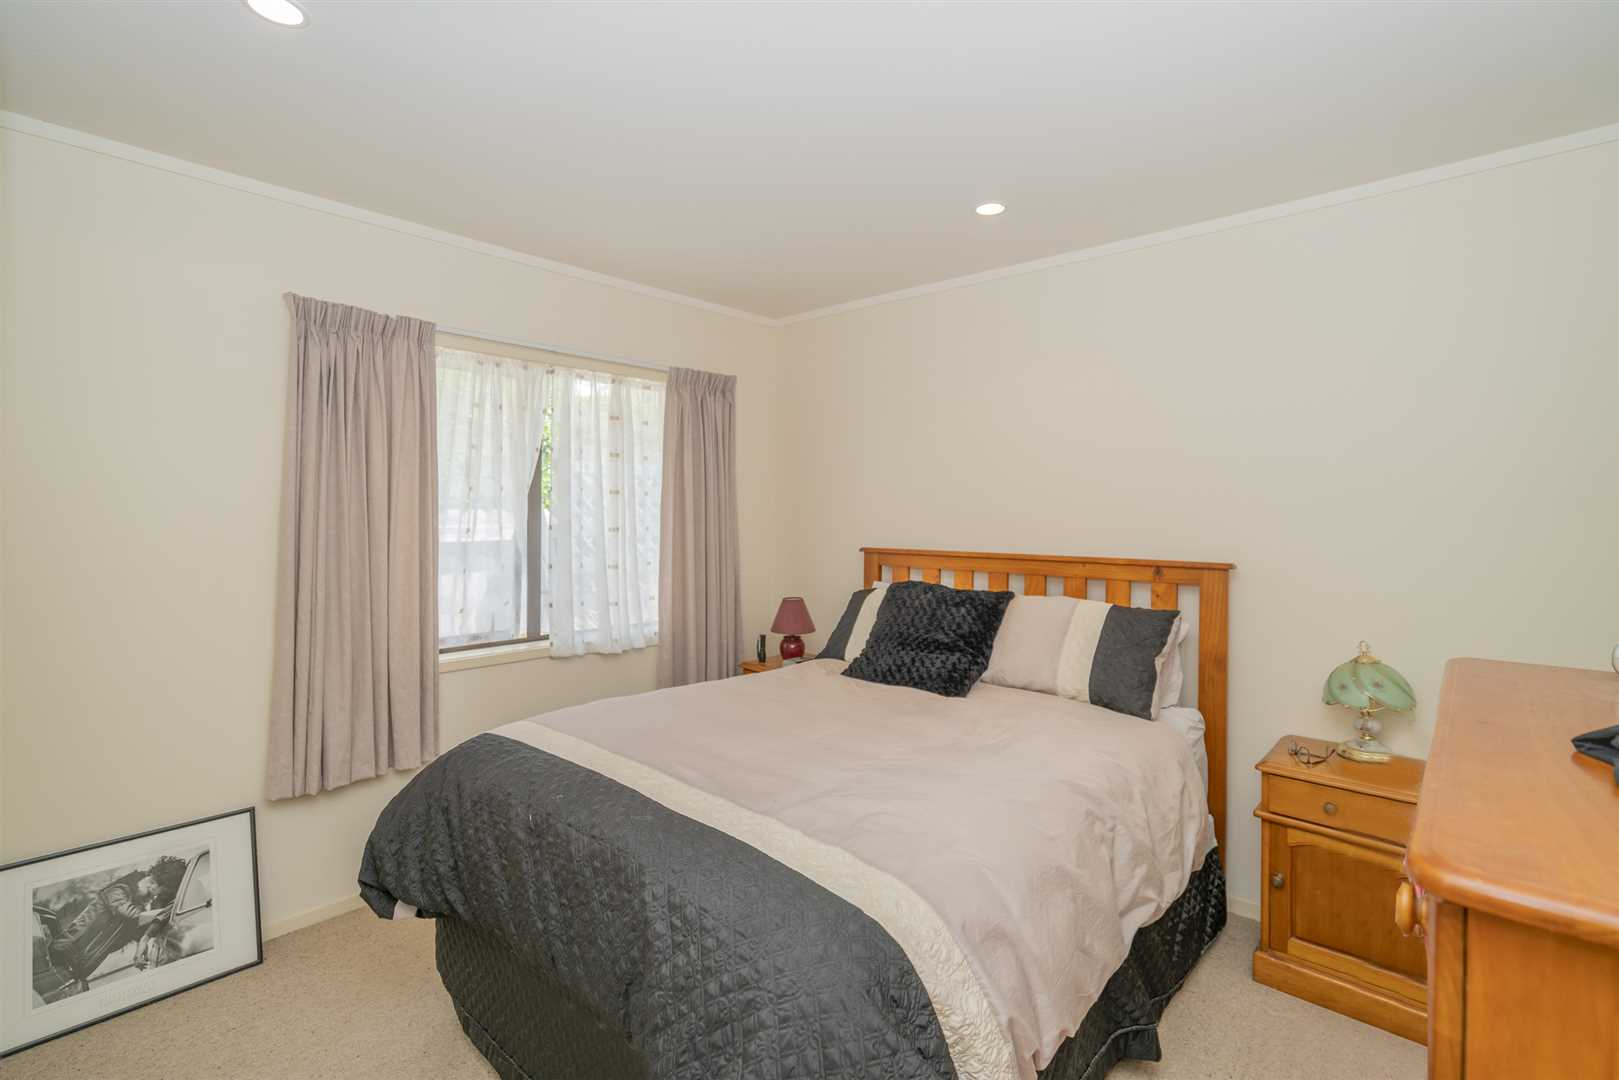 11/2 Mayfair Close, Whitianga